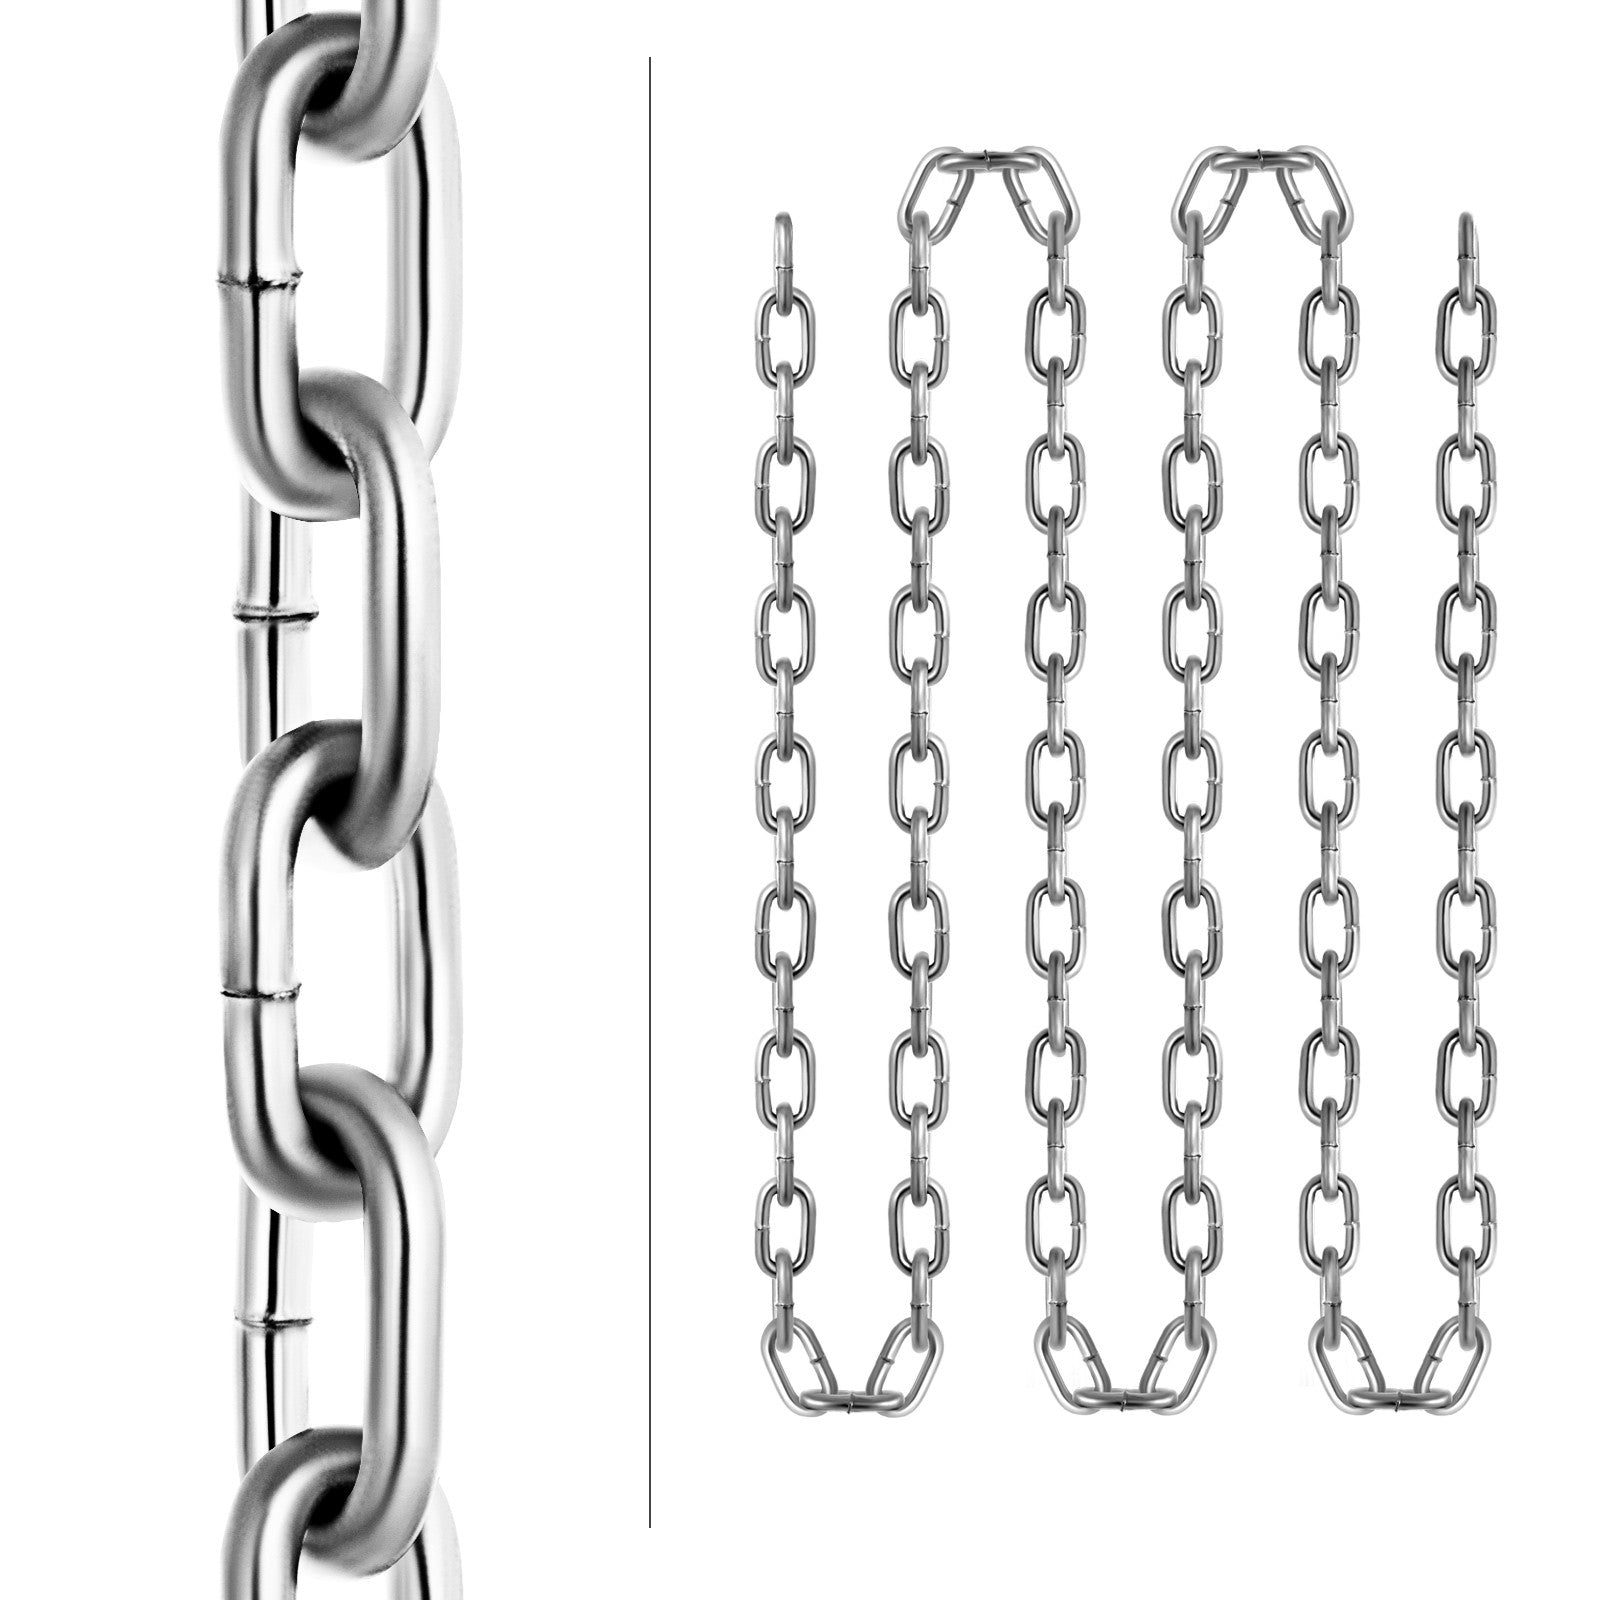 Chain Sling Zinc Plated G30 5/16'' 20' Electroplated Proof Coil Chain